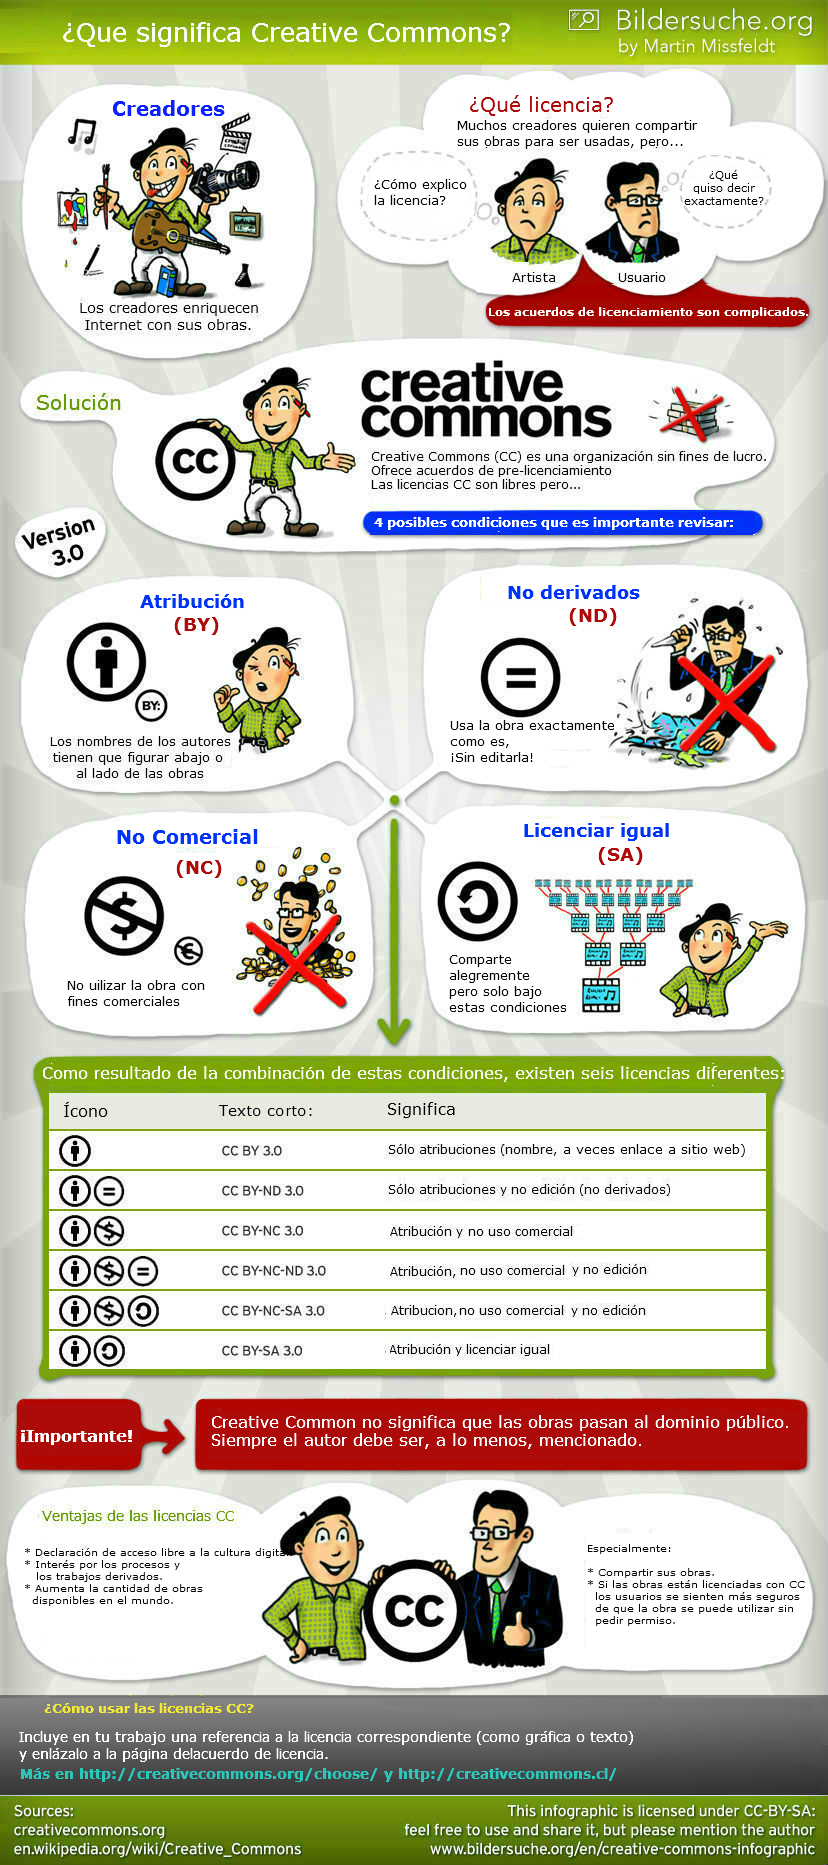 http://www.creativecommons.cl/wp-content/uploads/2014/05/creative-commons-infographic-Version-df.png